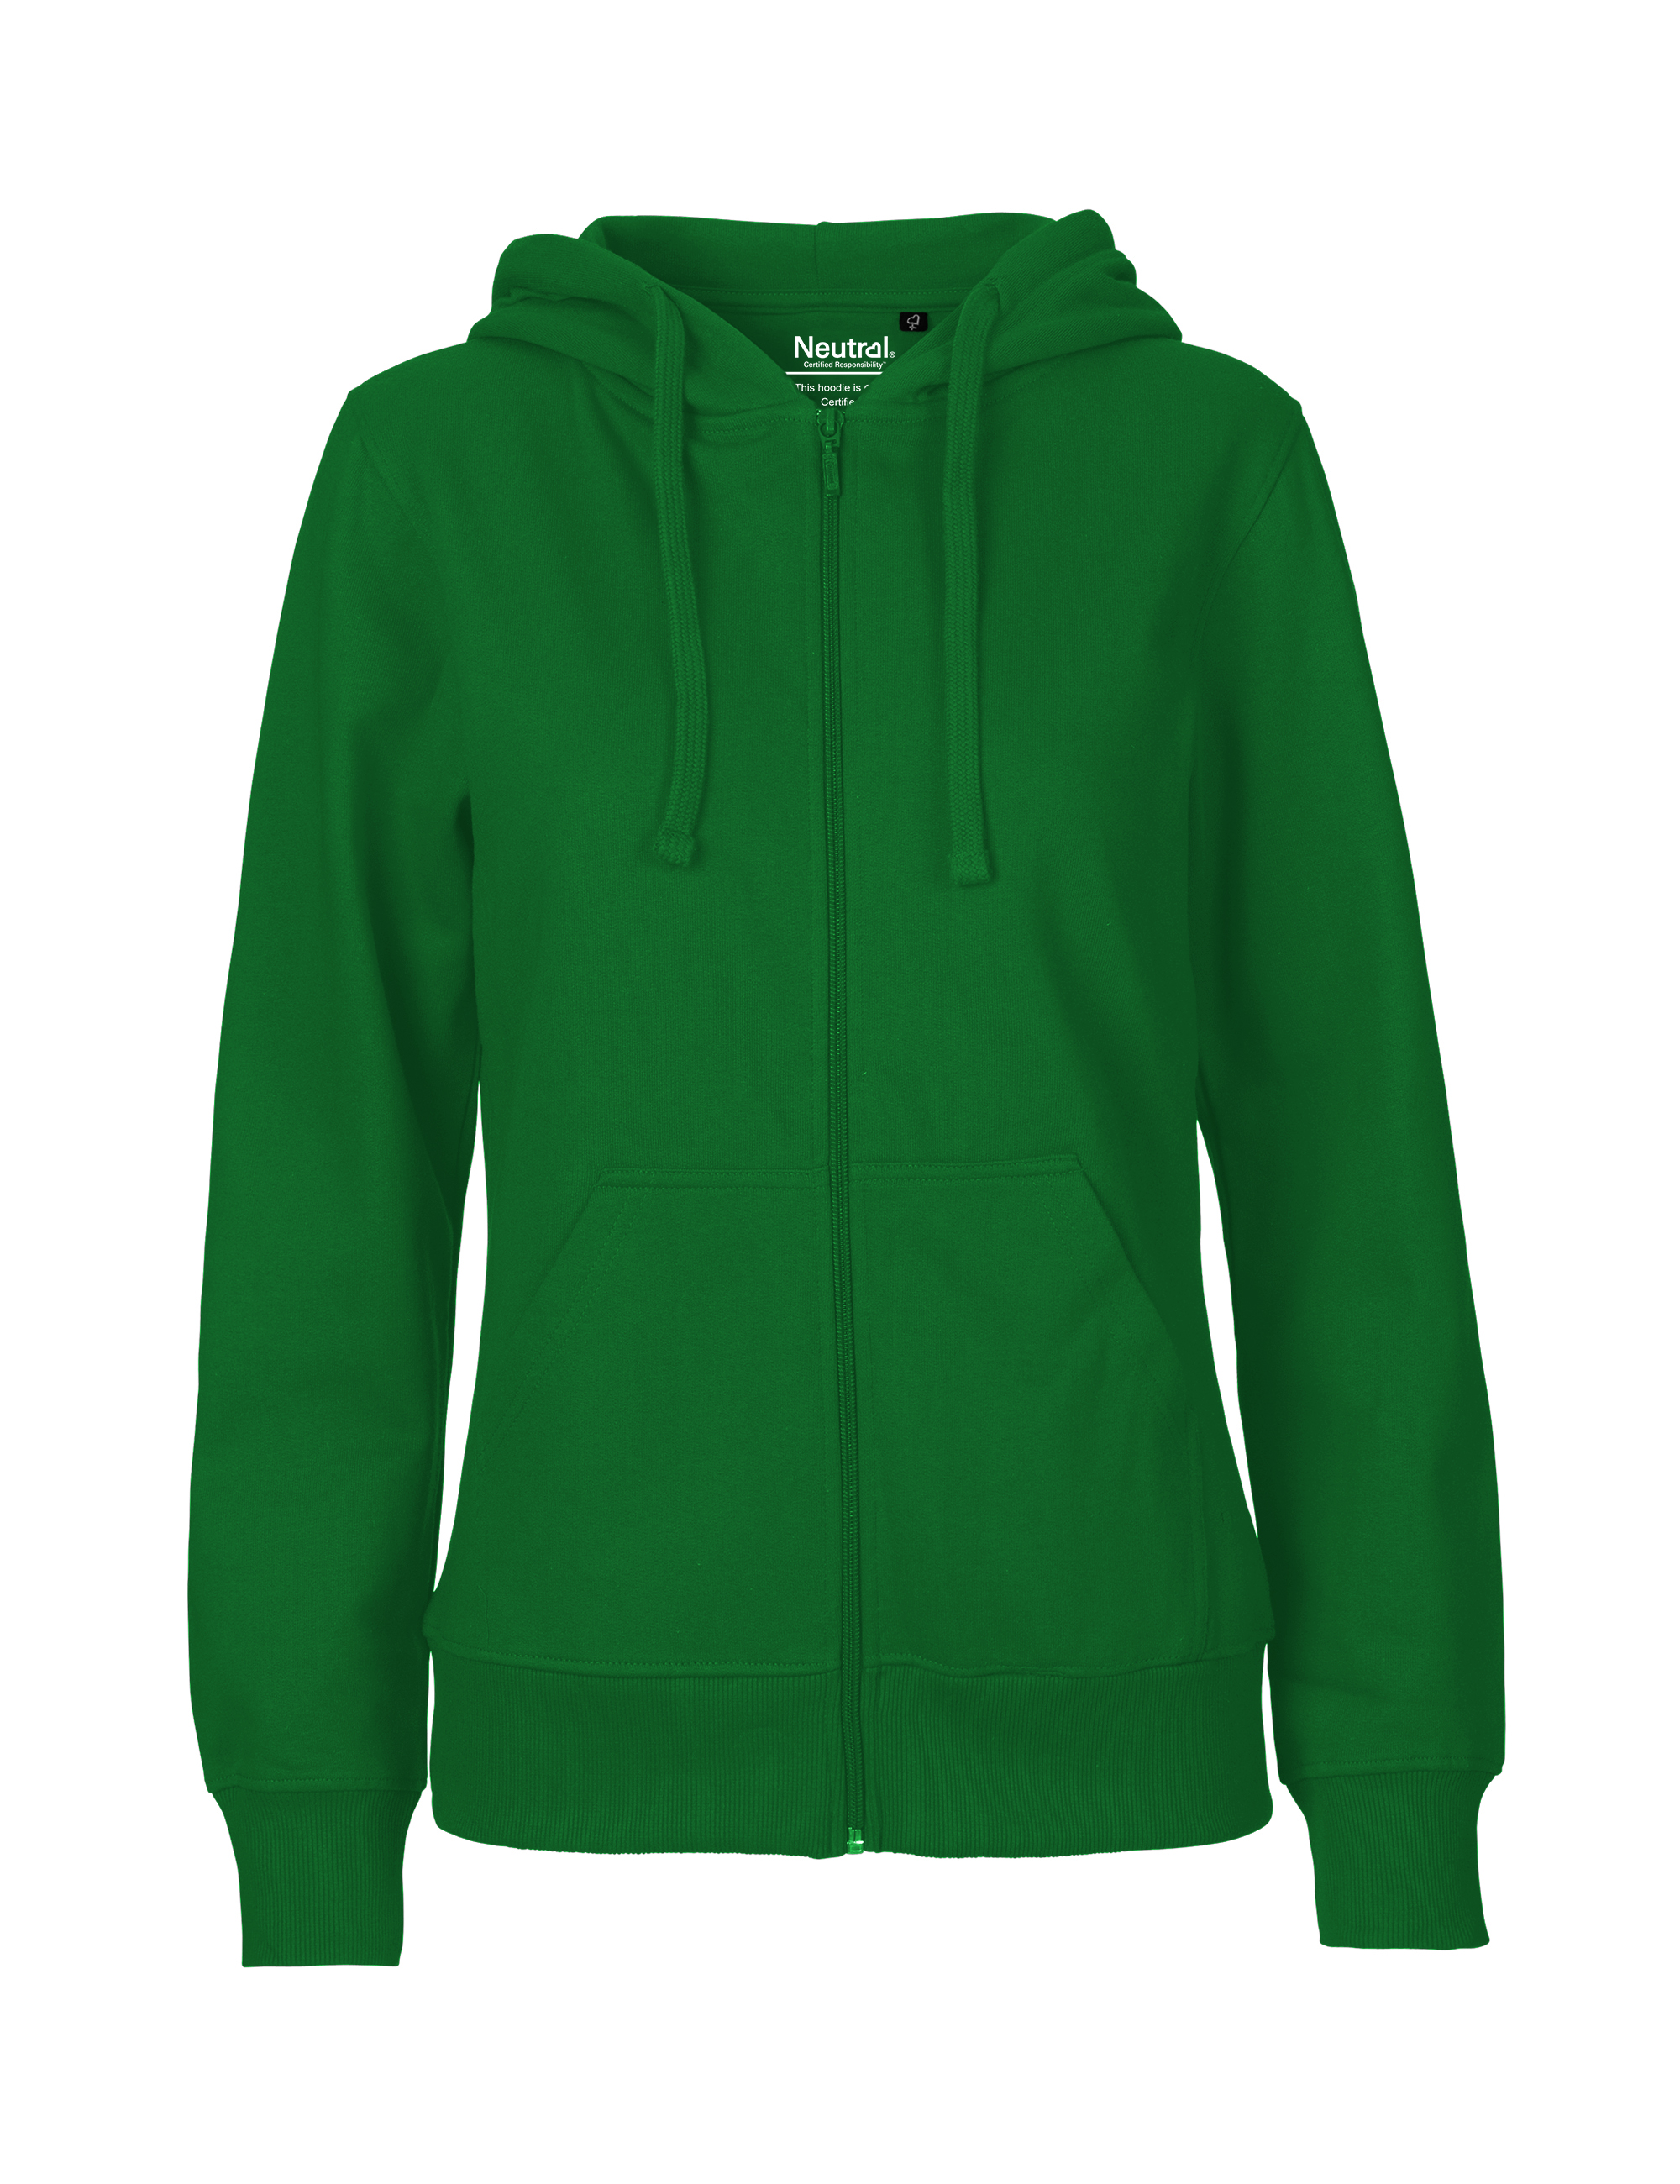 O83301 Ladies Hoodie w. Zip i Green